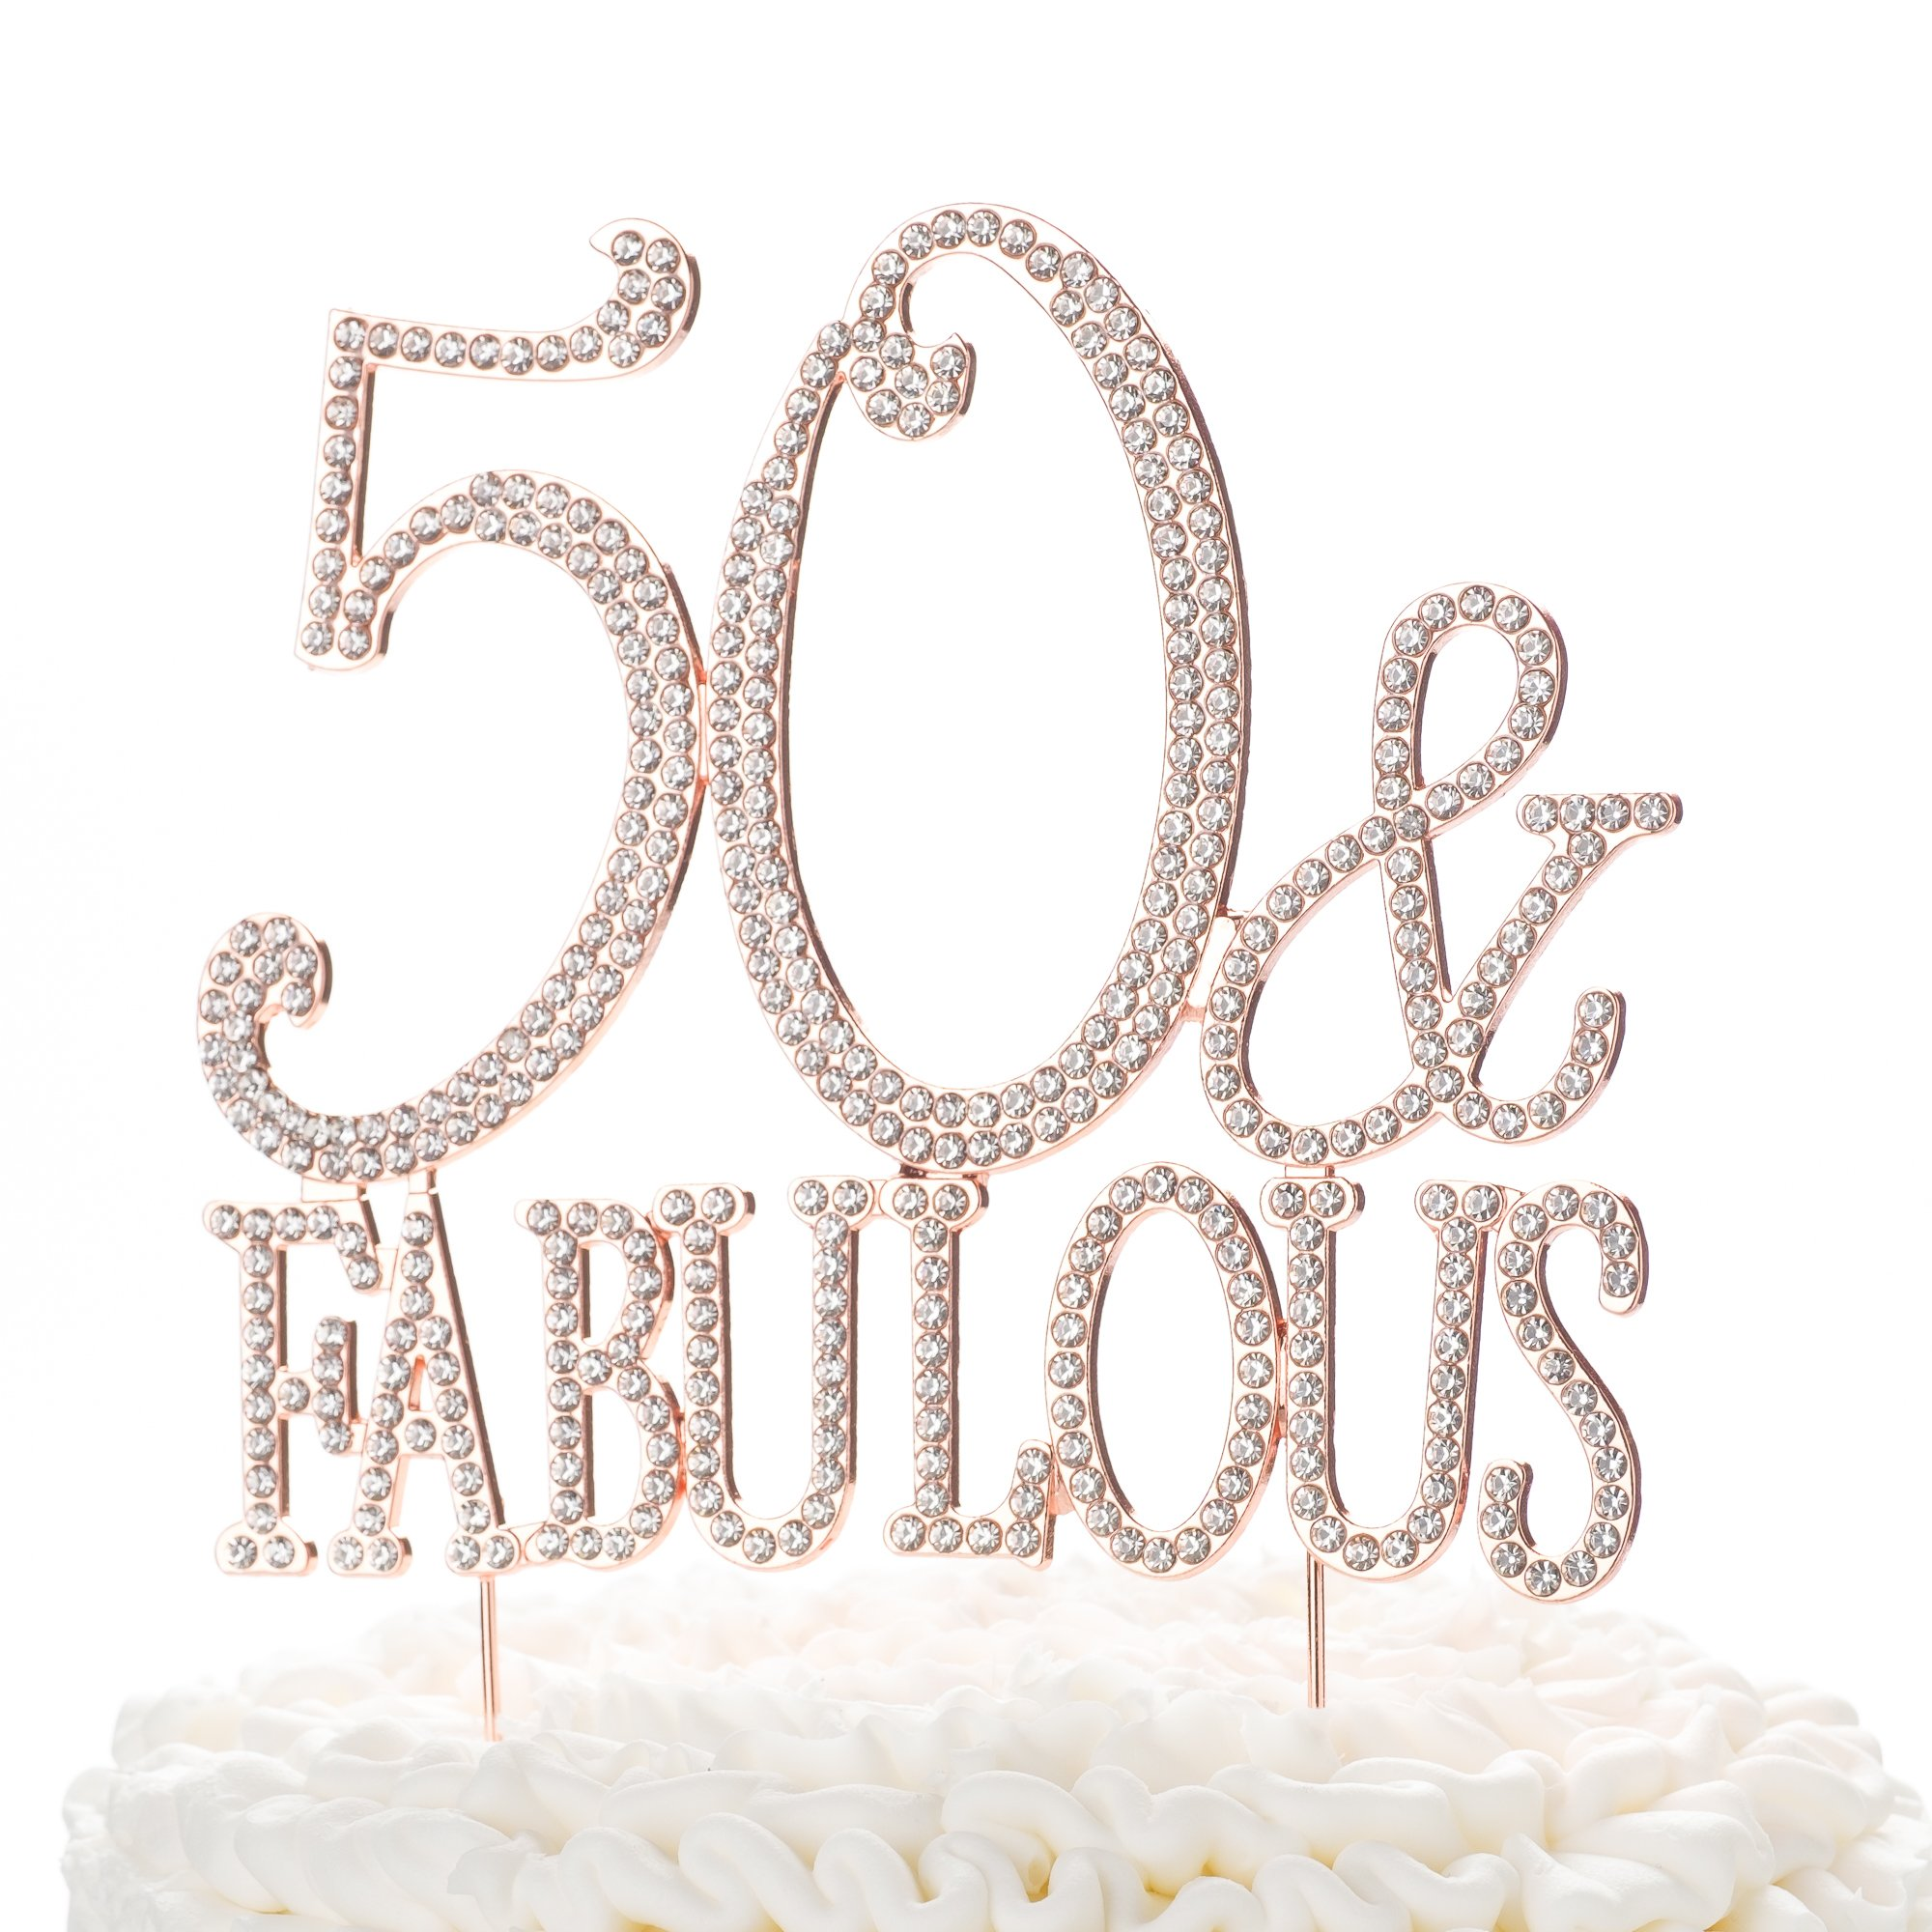 Amazon Ella Celebration 50 Fabulous Cake Topper For 50th Birthday Party Rose Gold Decoration Supplies Kitchen Dining